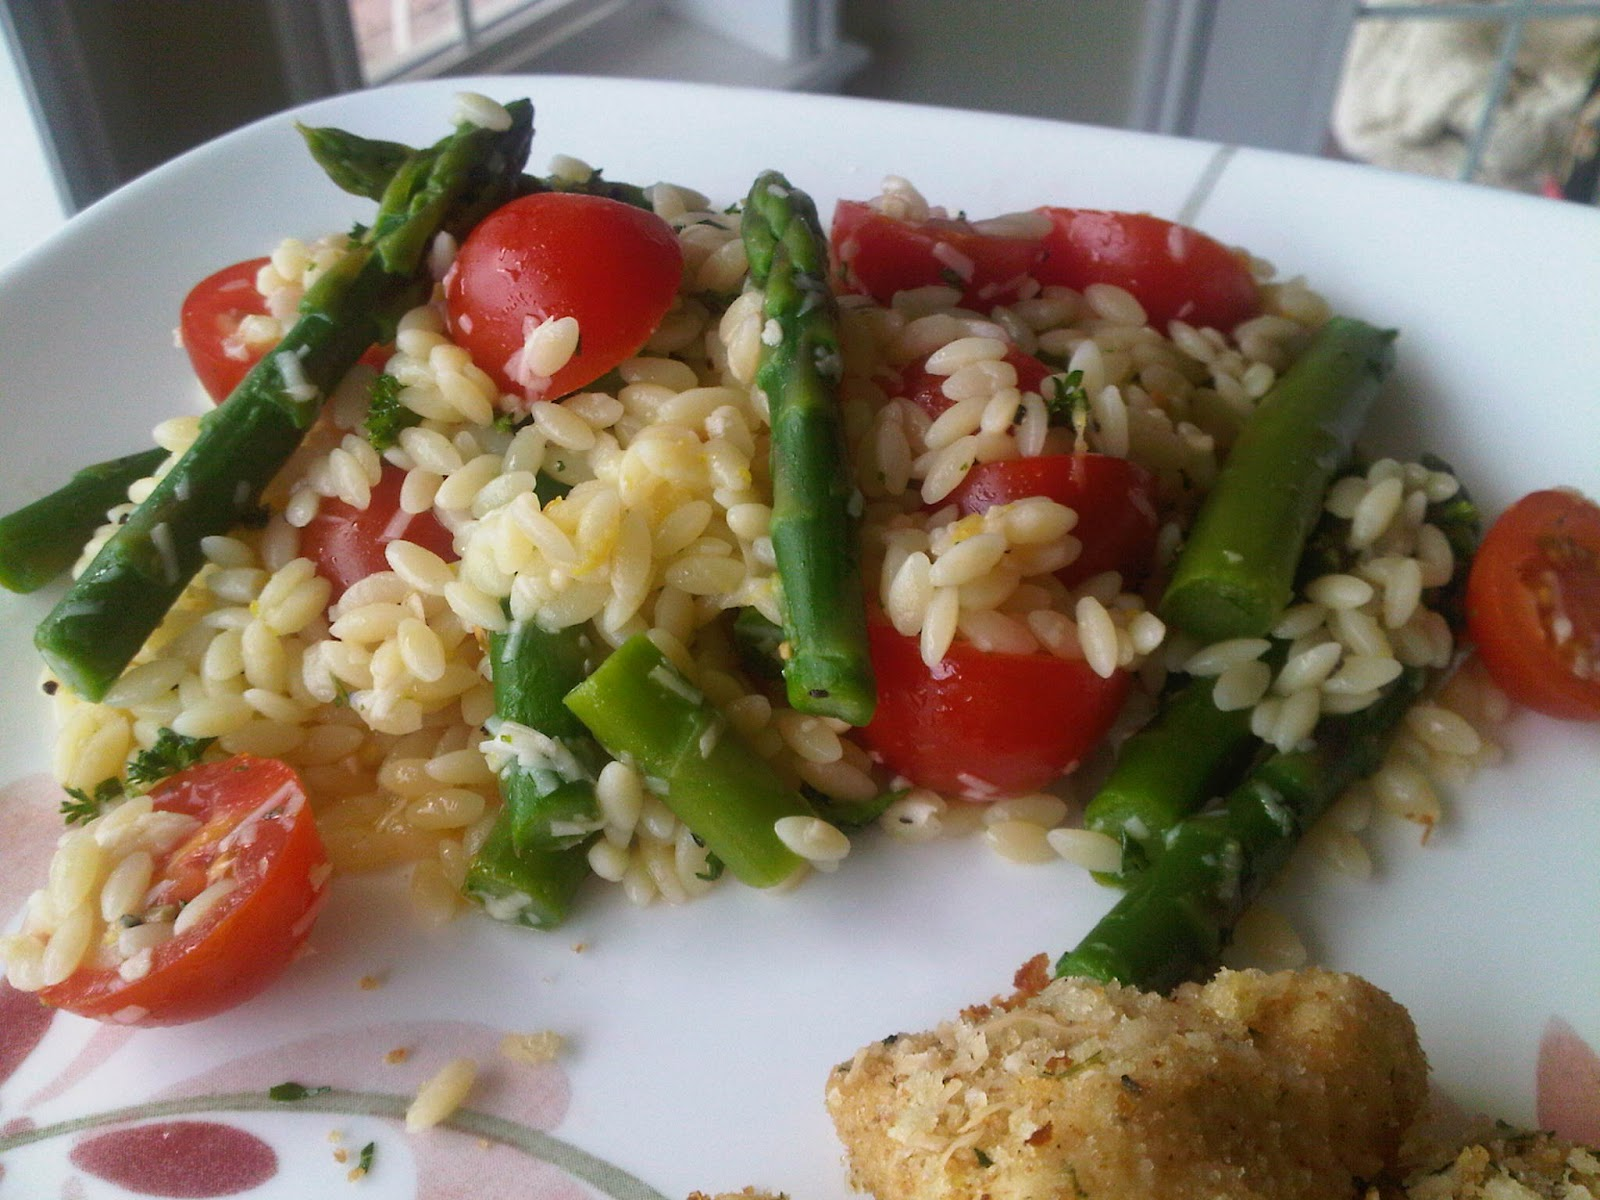 Healthy and Yummy Meals: Lemon Orzo Salad with Asparagus and Tomatoes